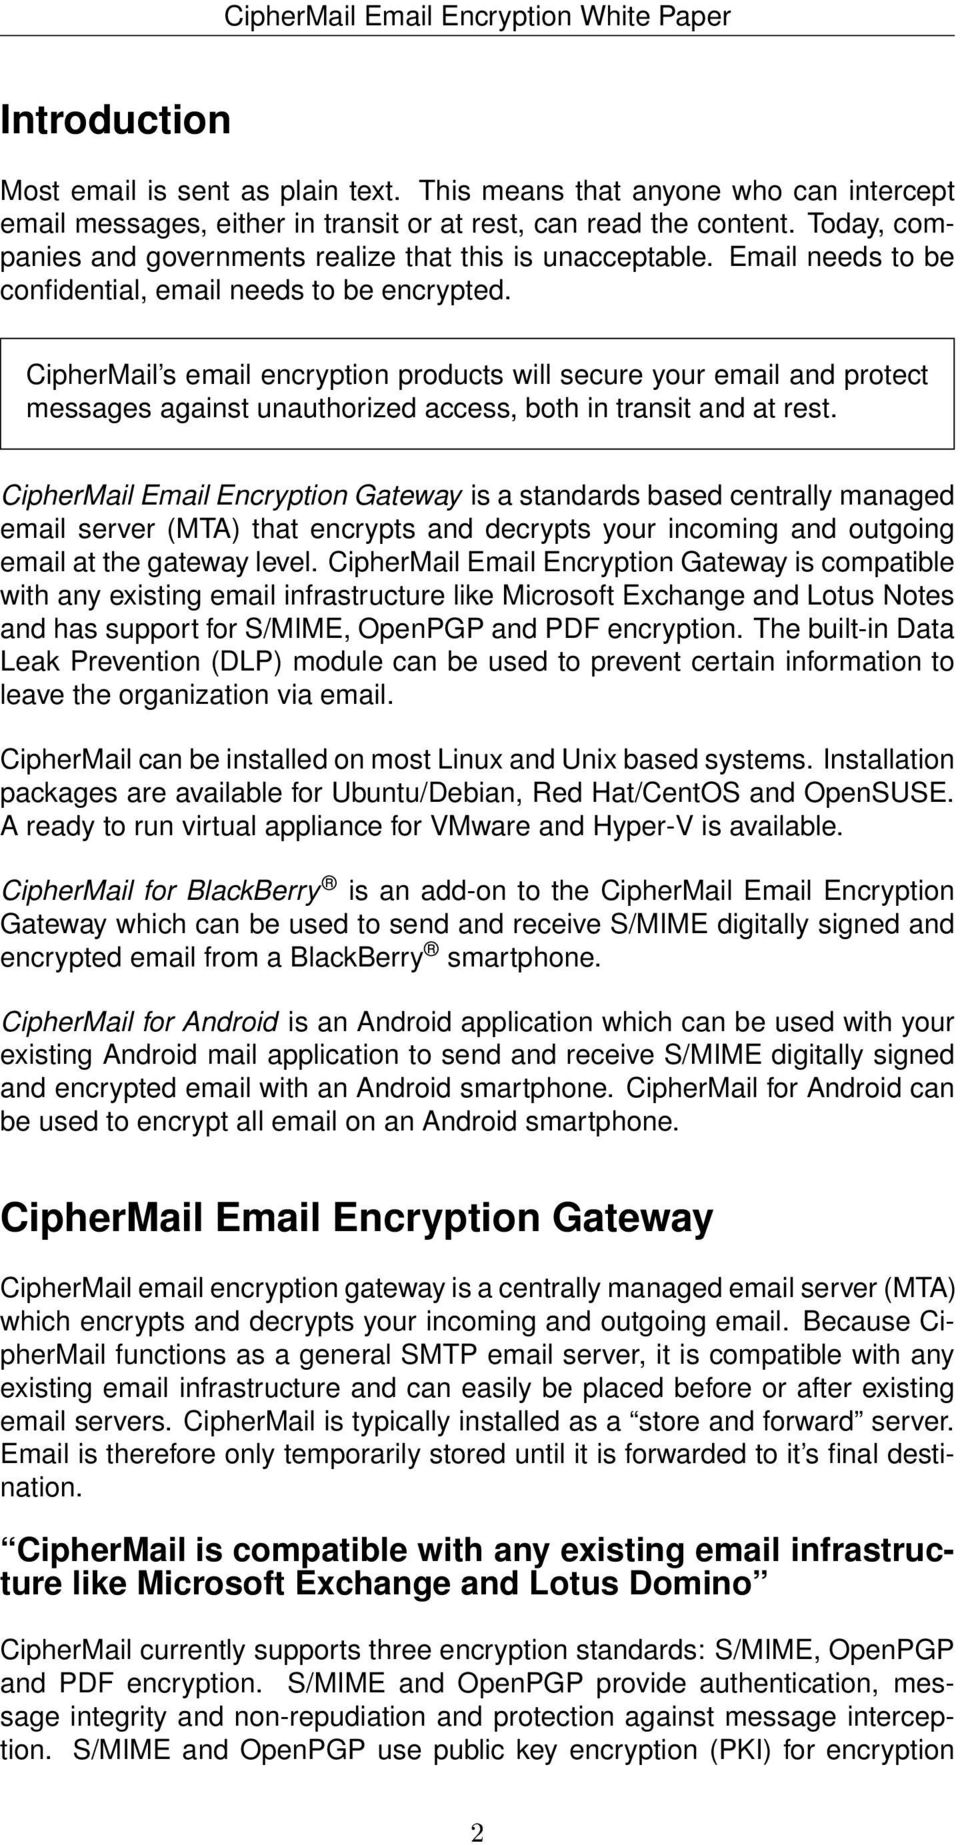 CipherMail s email encryption products will secure your email and protect messages against unauthorized access, both in transit and at rest.